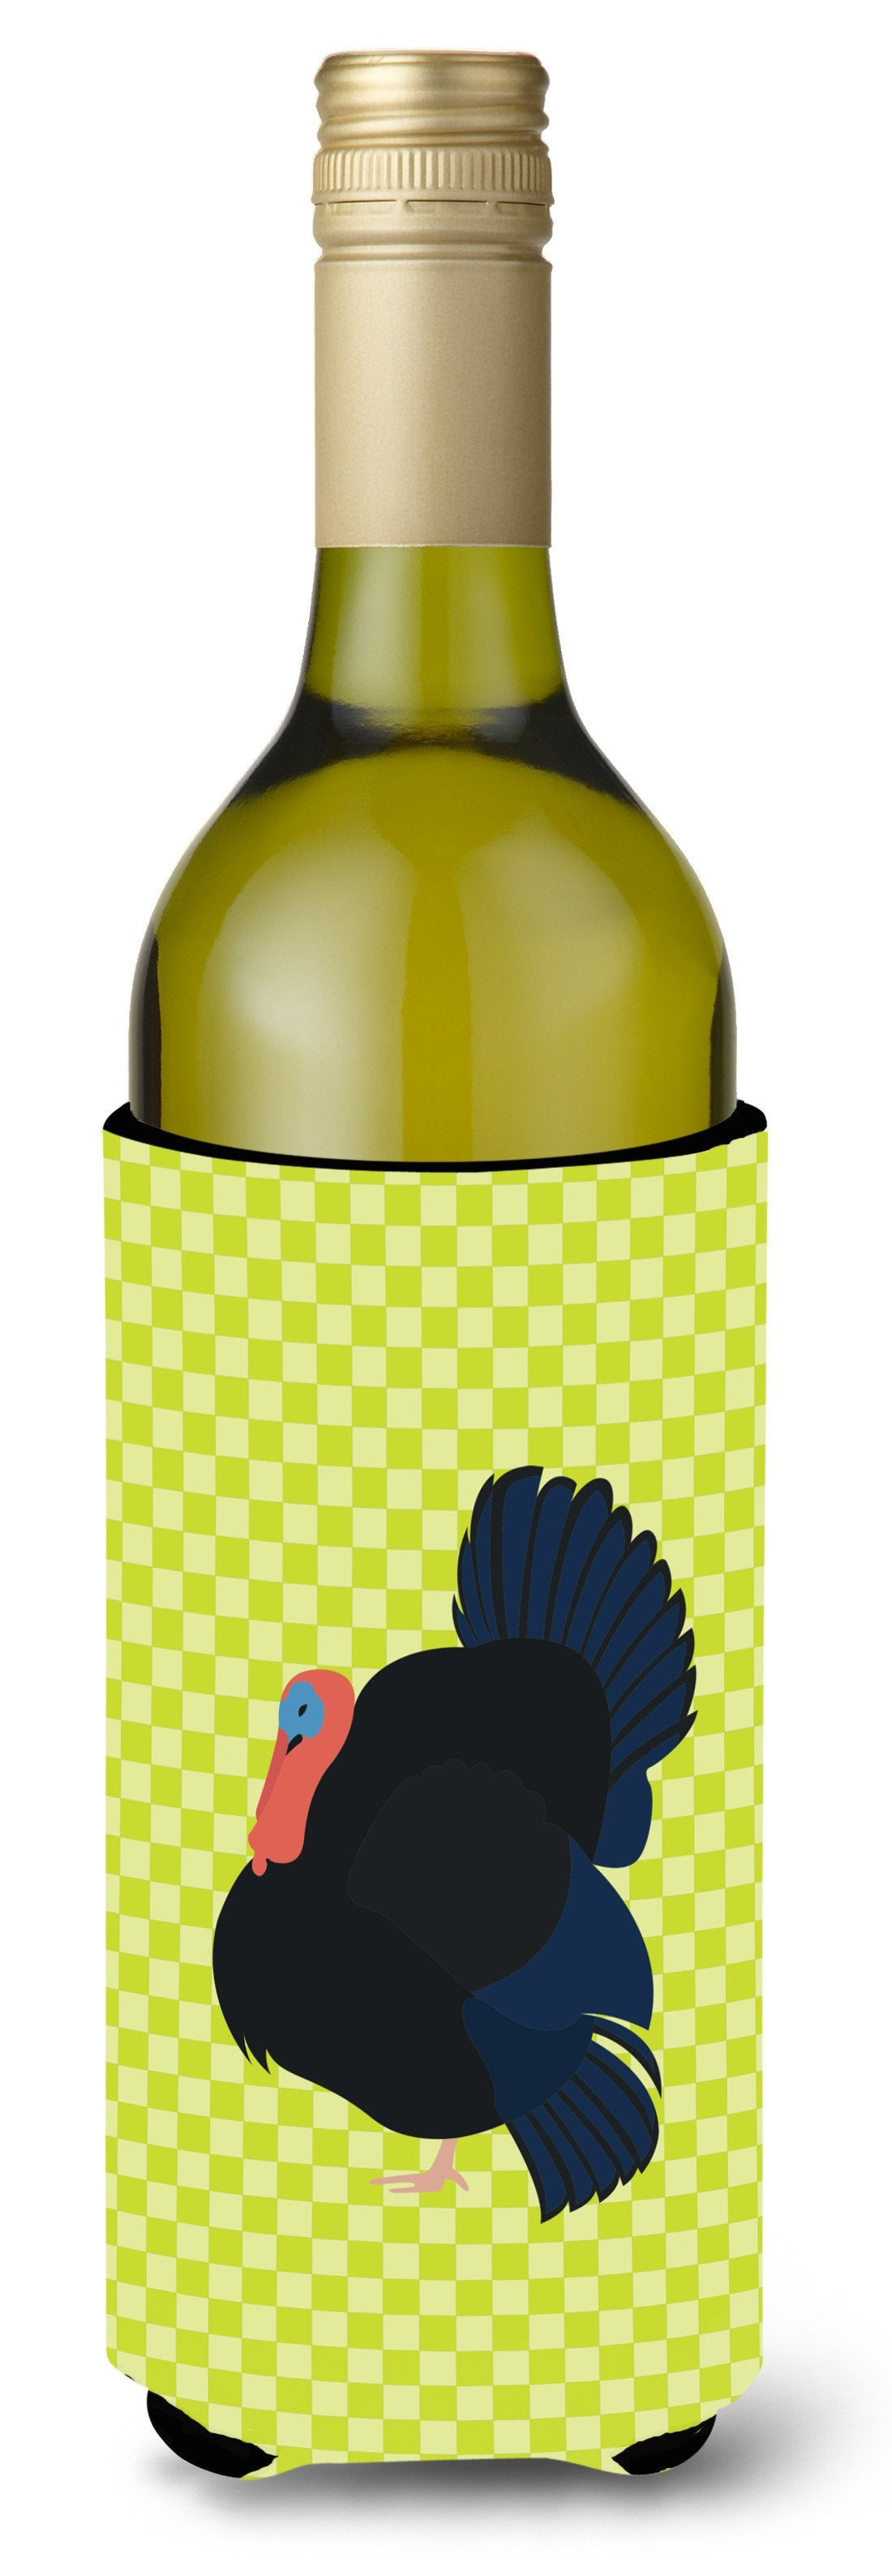 Norfolk Black Turkey Green Wine Bottle Beverge Insulator Hugger BB7811LITERK by Caroline's Treasures